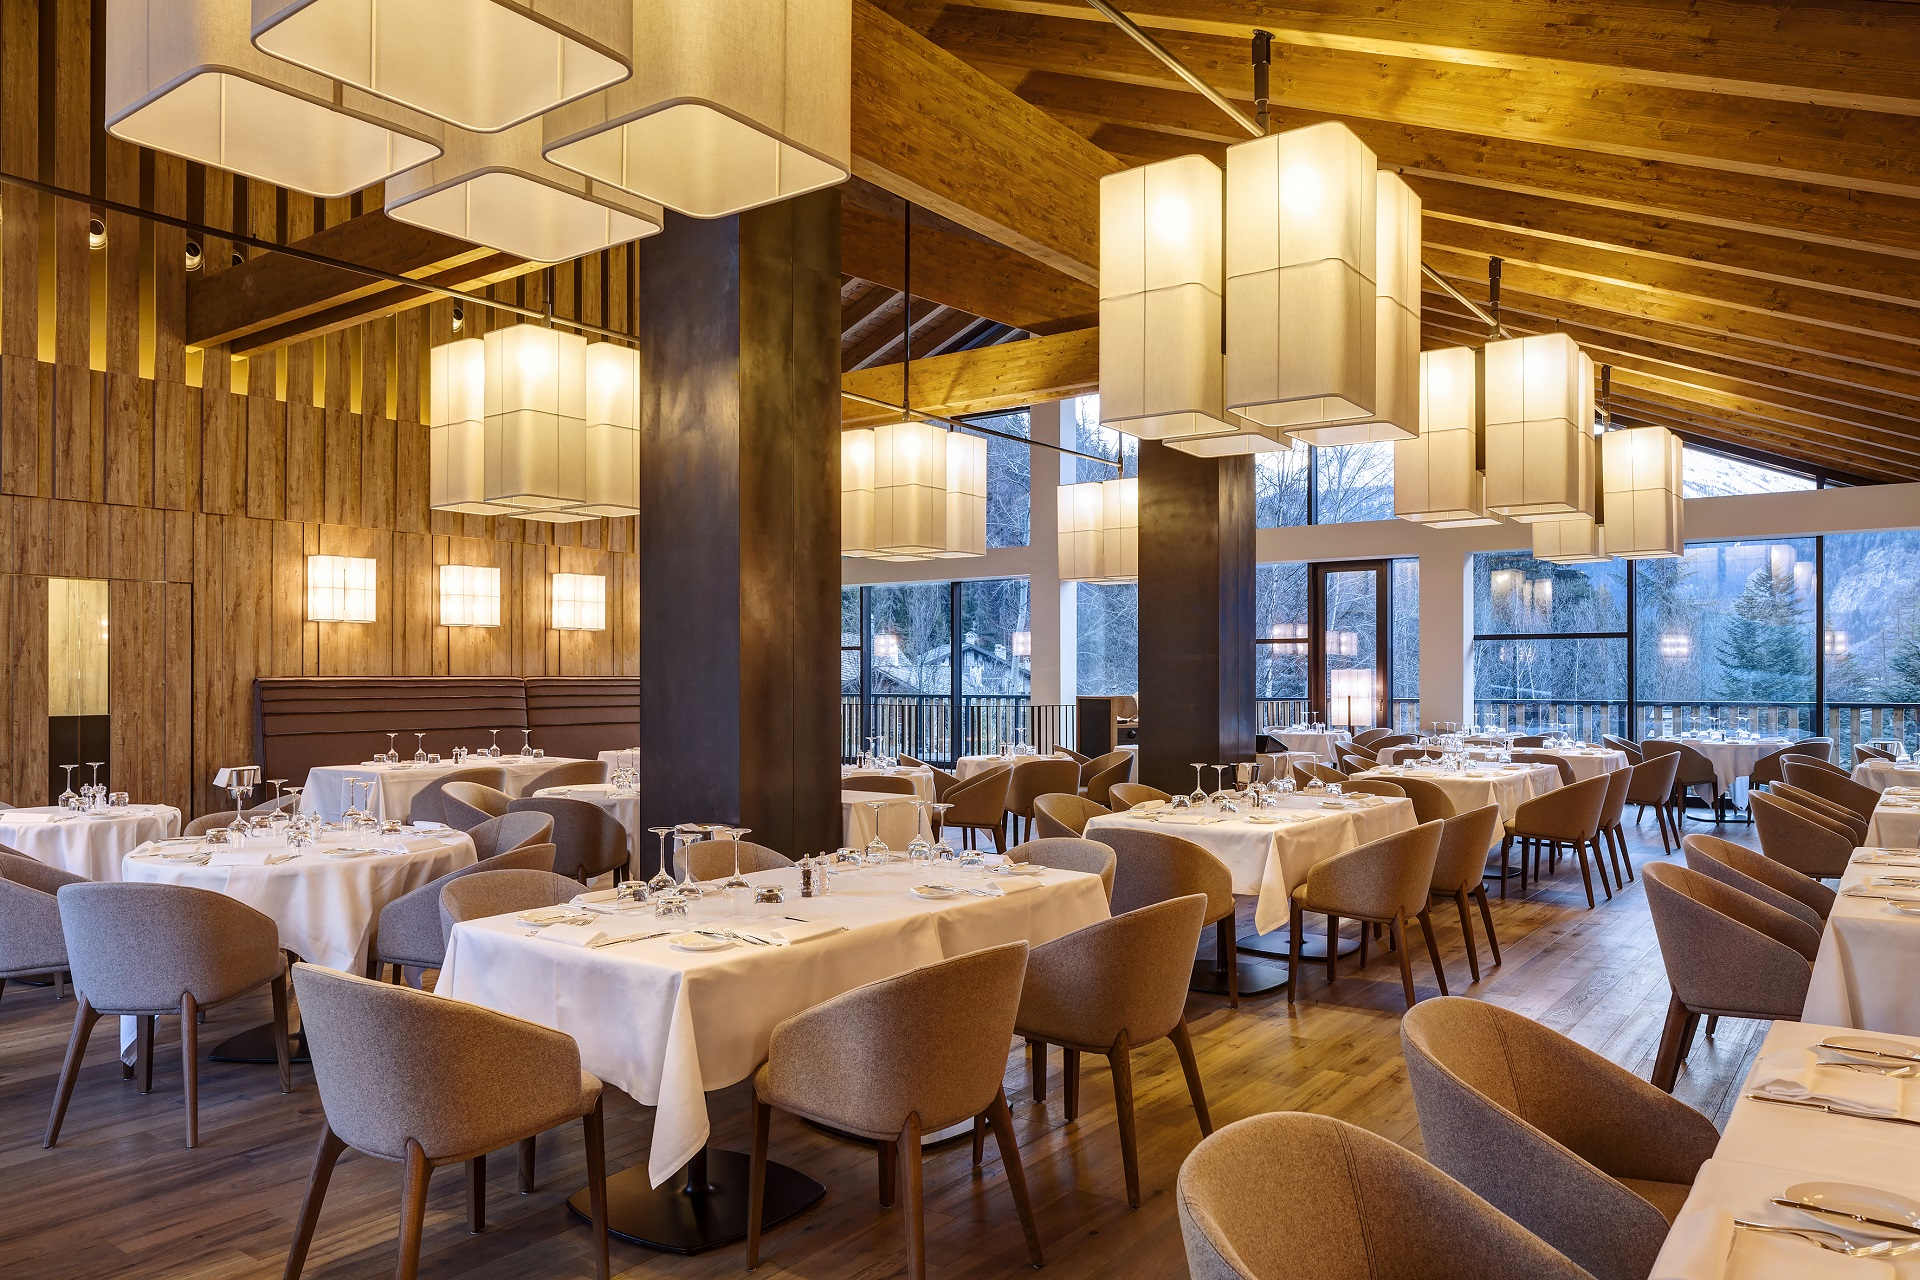 Hotel Mont Blanc Courmayeur- Where You Should be Spending Your Winter